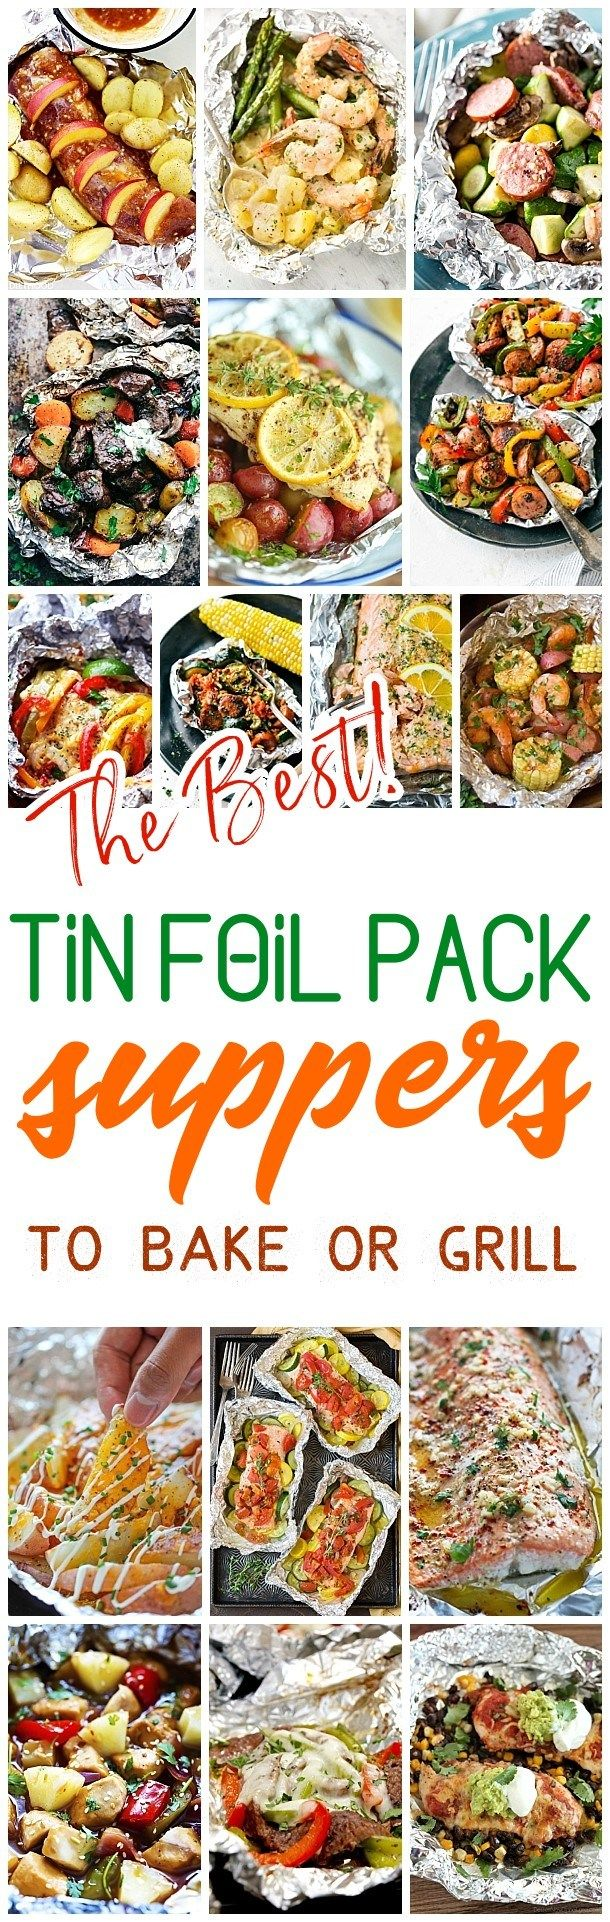 The Best Tin Foil Pack Suppers Recipes to Bake or Grill - Easy meal prep and easy cleanup! delicious chicken, beef, salmon, pork, shrimp and chicken tin foil packet dinners you and your family can enjoy making in the oven all year long, throwing on the backyard grill or tossing in the campfire coals this summer! Dreaming in DIY